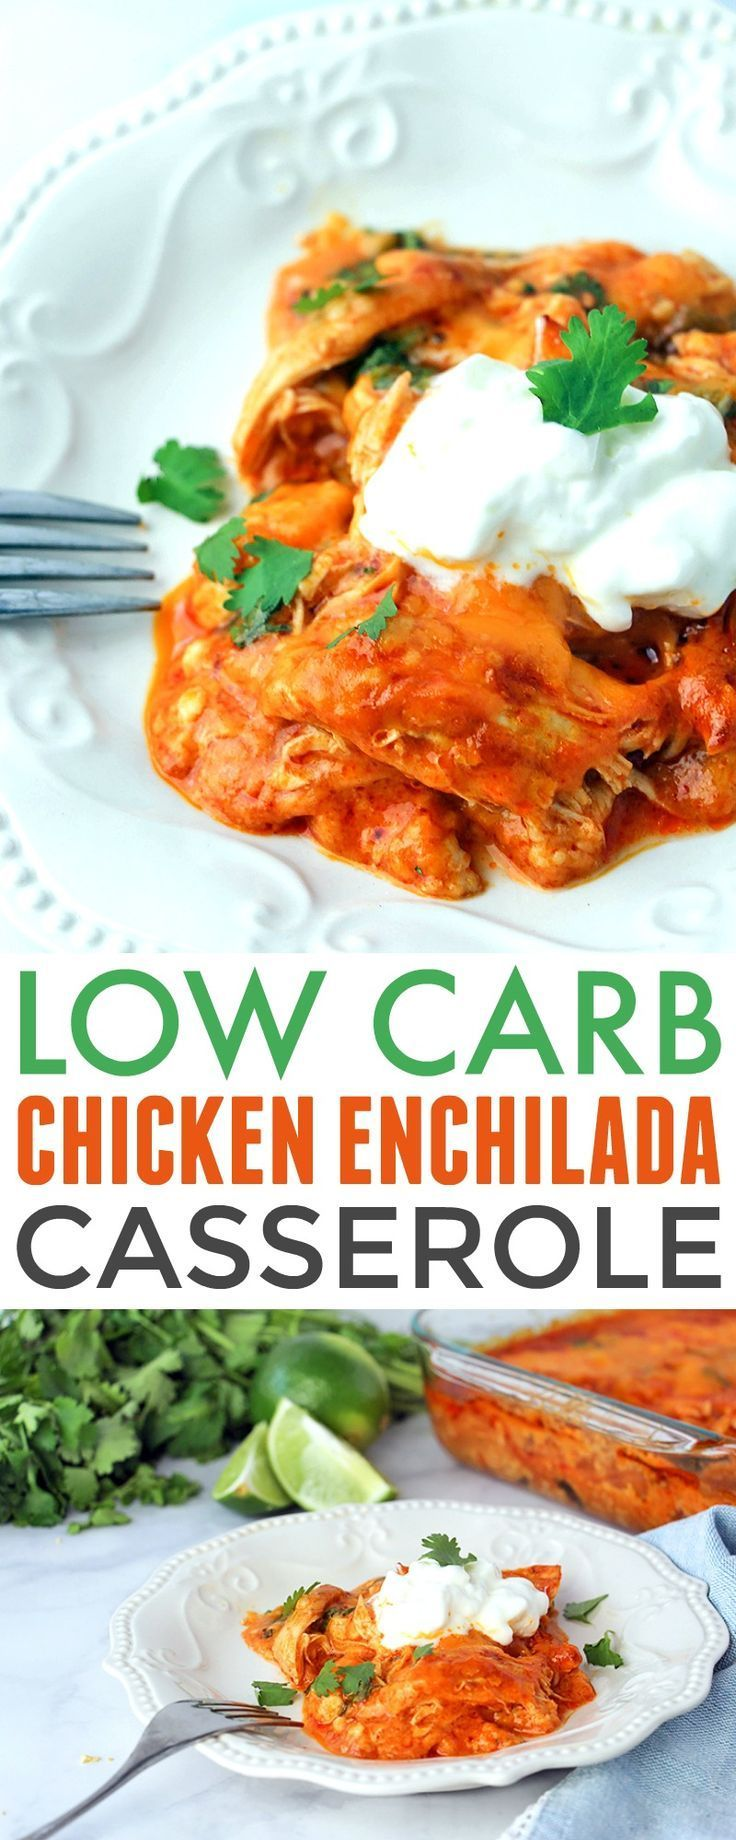 Low Carb Chicken Enchilada Casserole - easy and delish way to enjoy enchiladas on a low carb or keto diet. It's based off the America's Test Kitchen Chicken Enchiladas so you know it's good! https://www.730sagestreet.com/low-carb-chicken-enchilada-casserole/